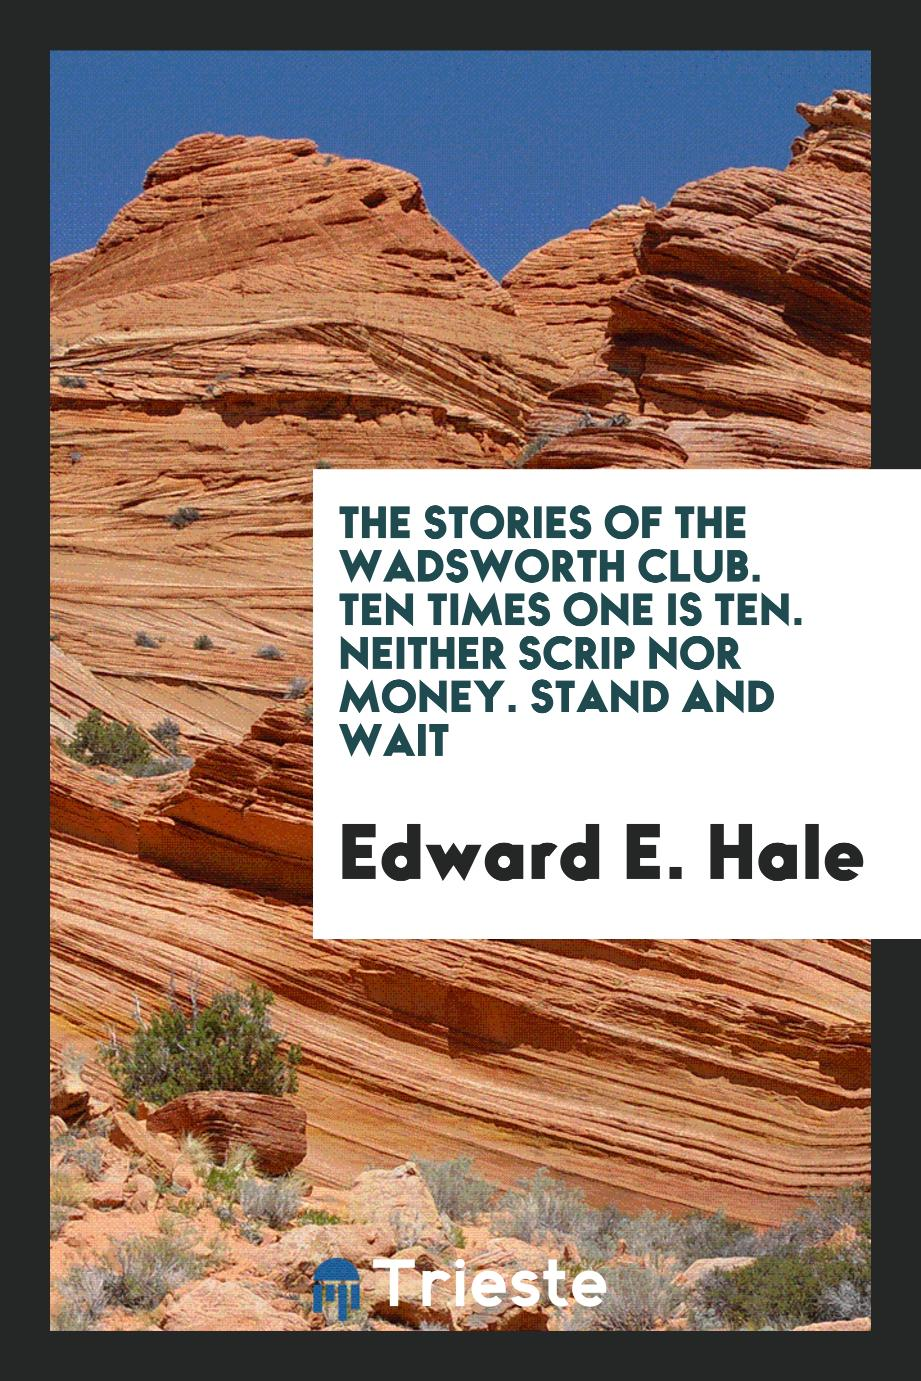 Edward E. Hale - The stories of the Wadsworth Club. Ten times one is ten. Neither scrip nor money. Stand and Wait